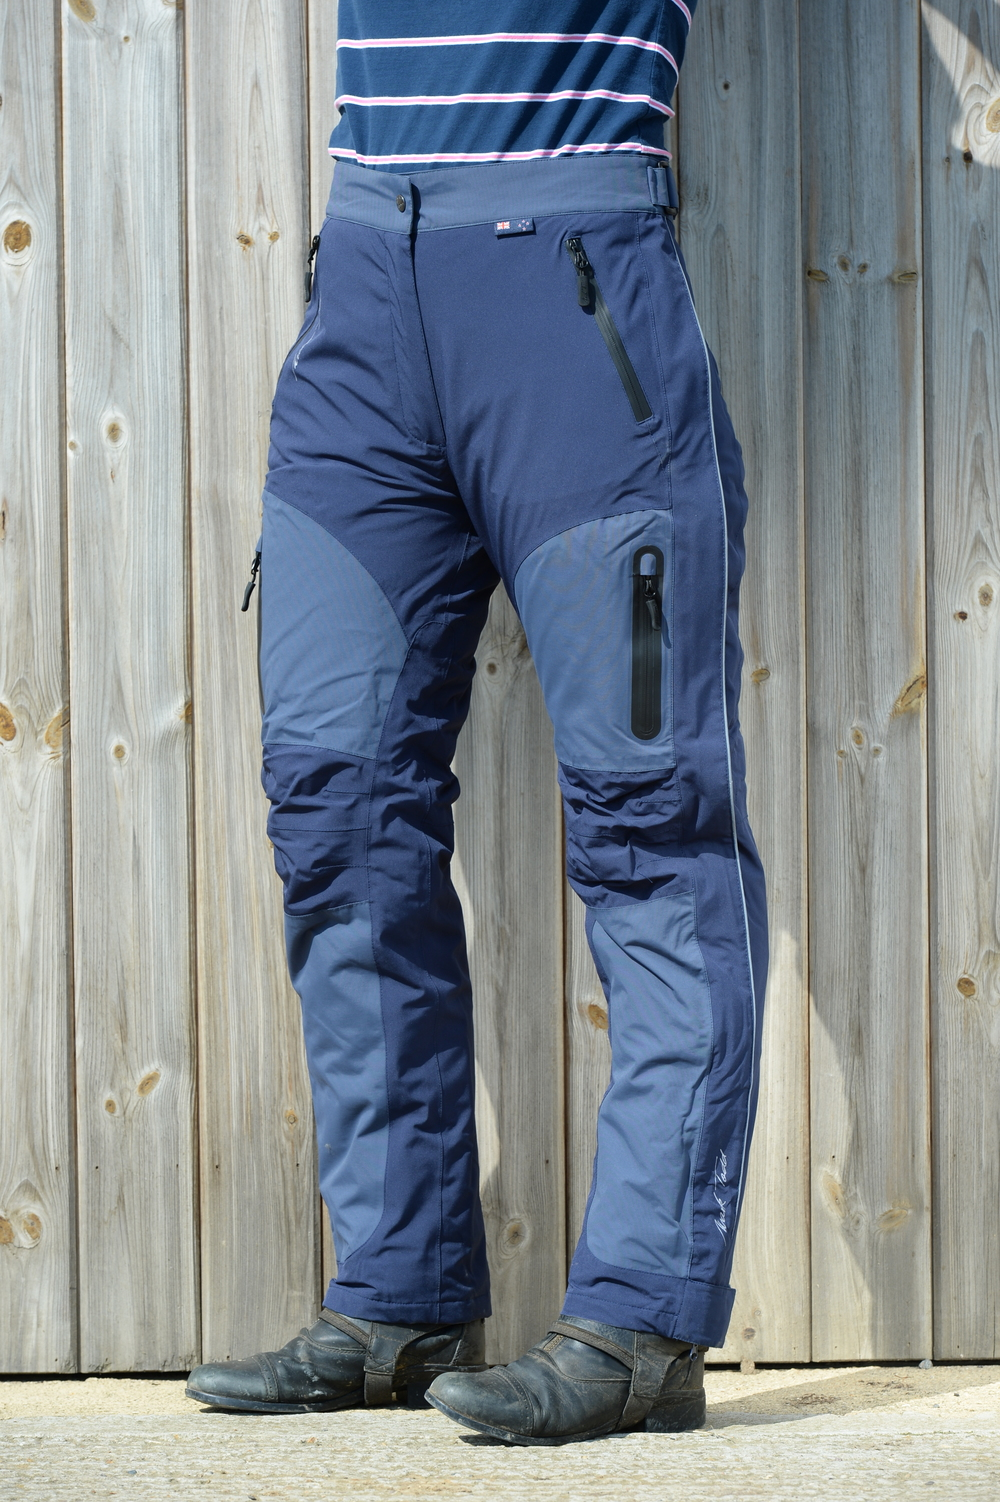 The Mark Todd Reinga ladies trousers won our Gear Guide test in December 2015.